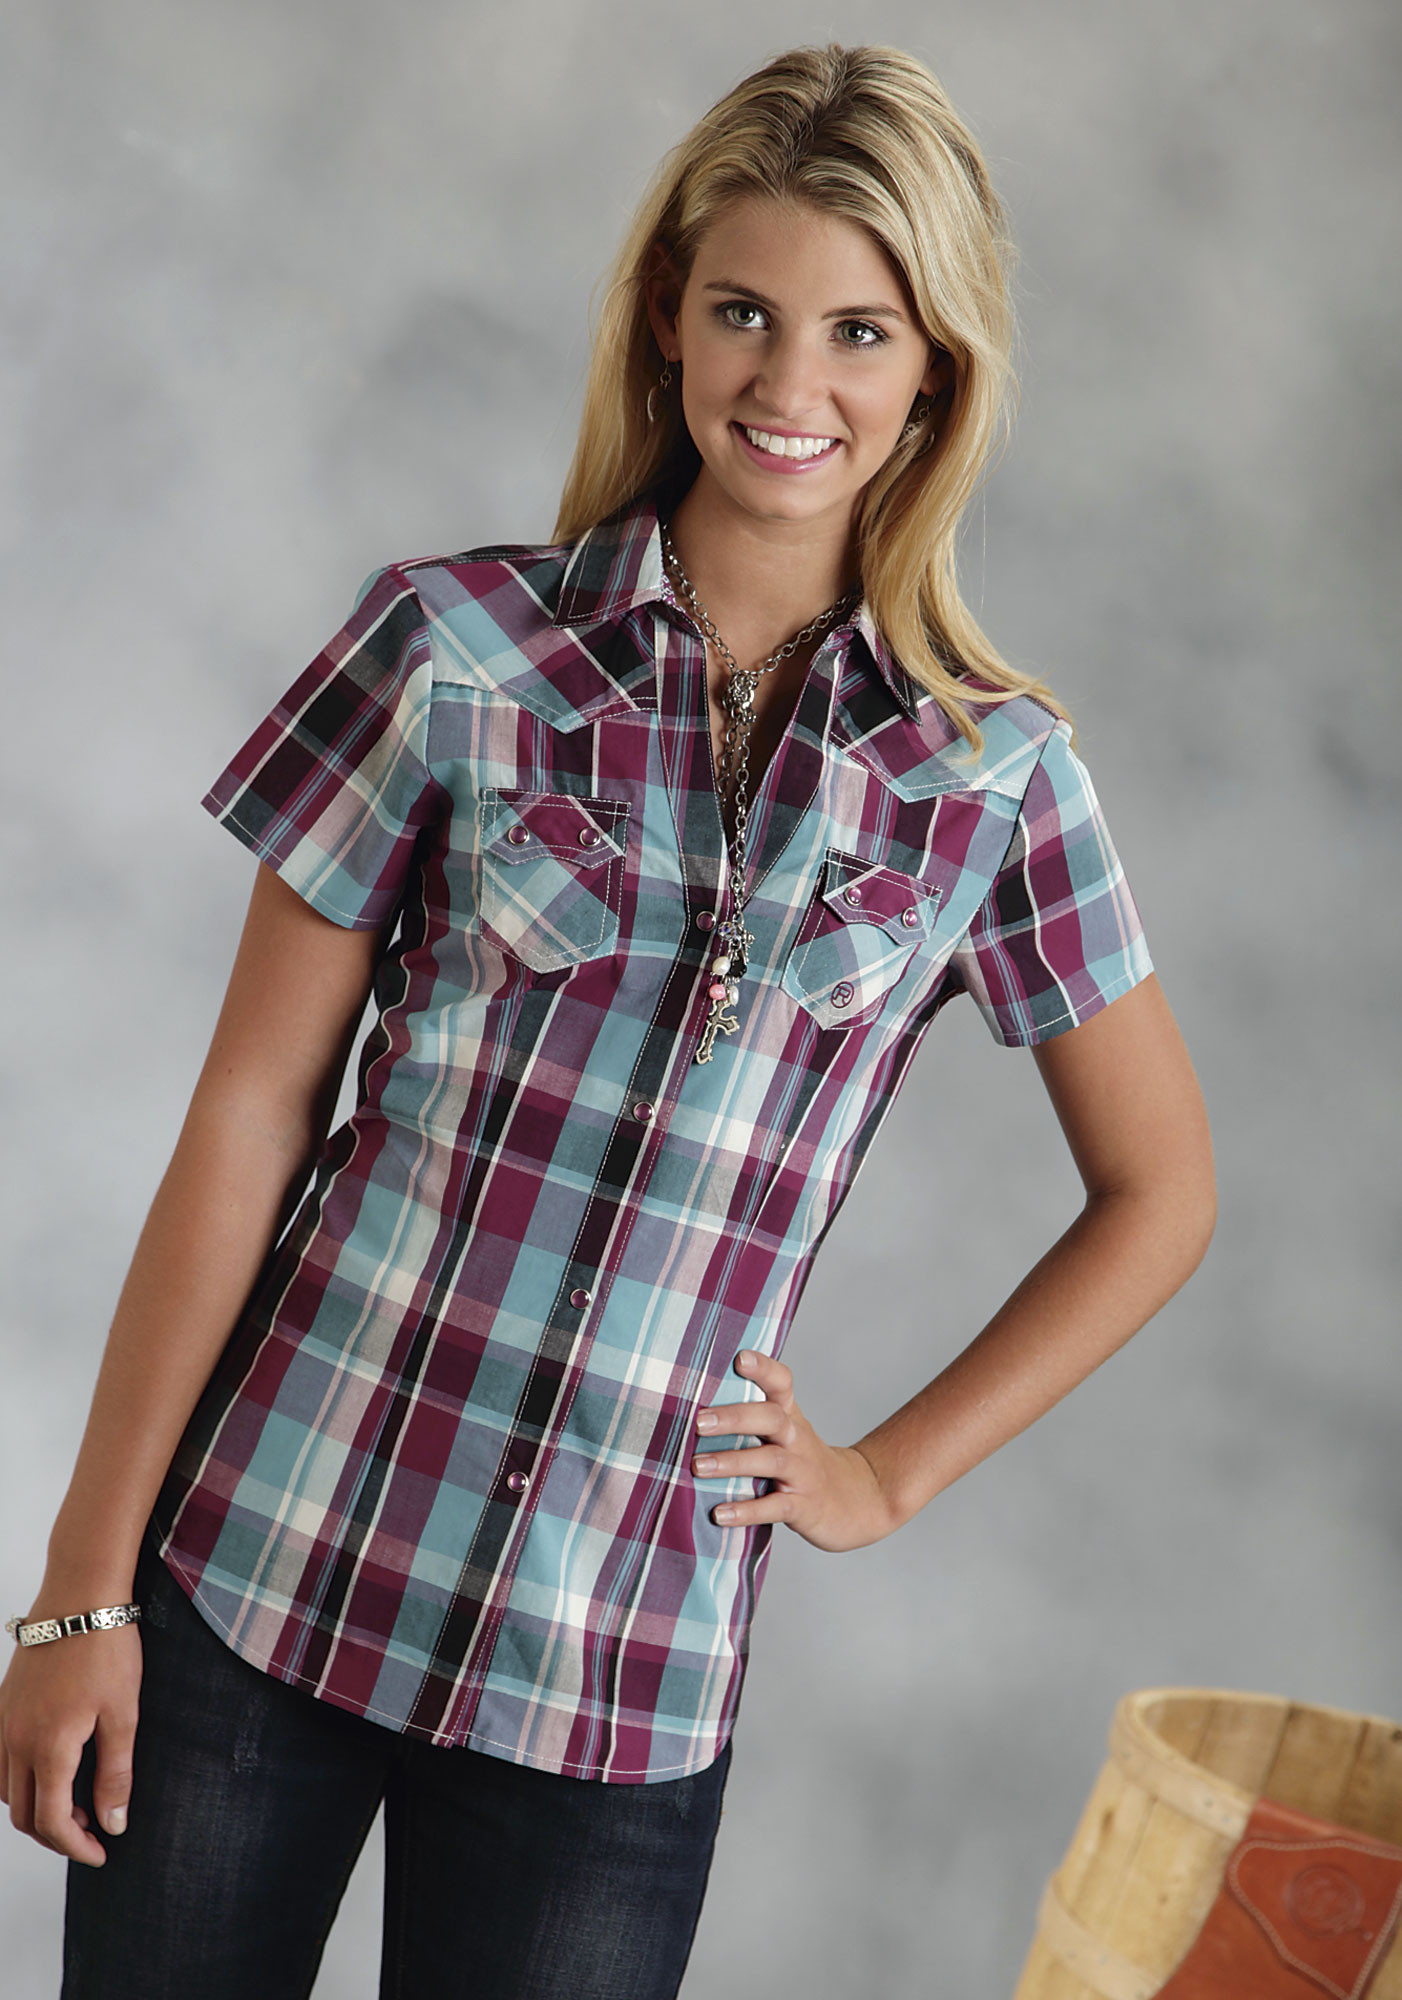 Sleeveless Shirts For Womens